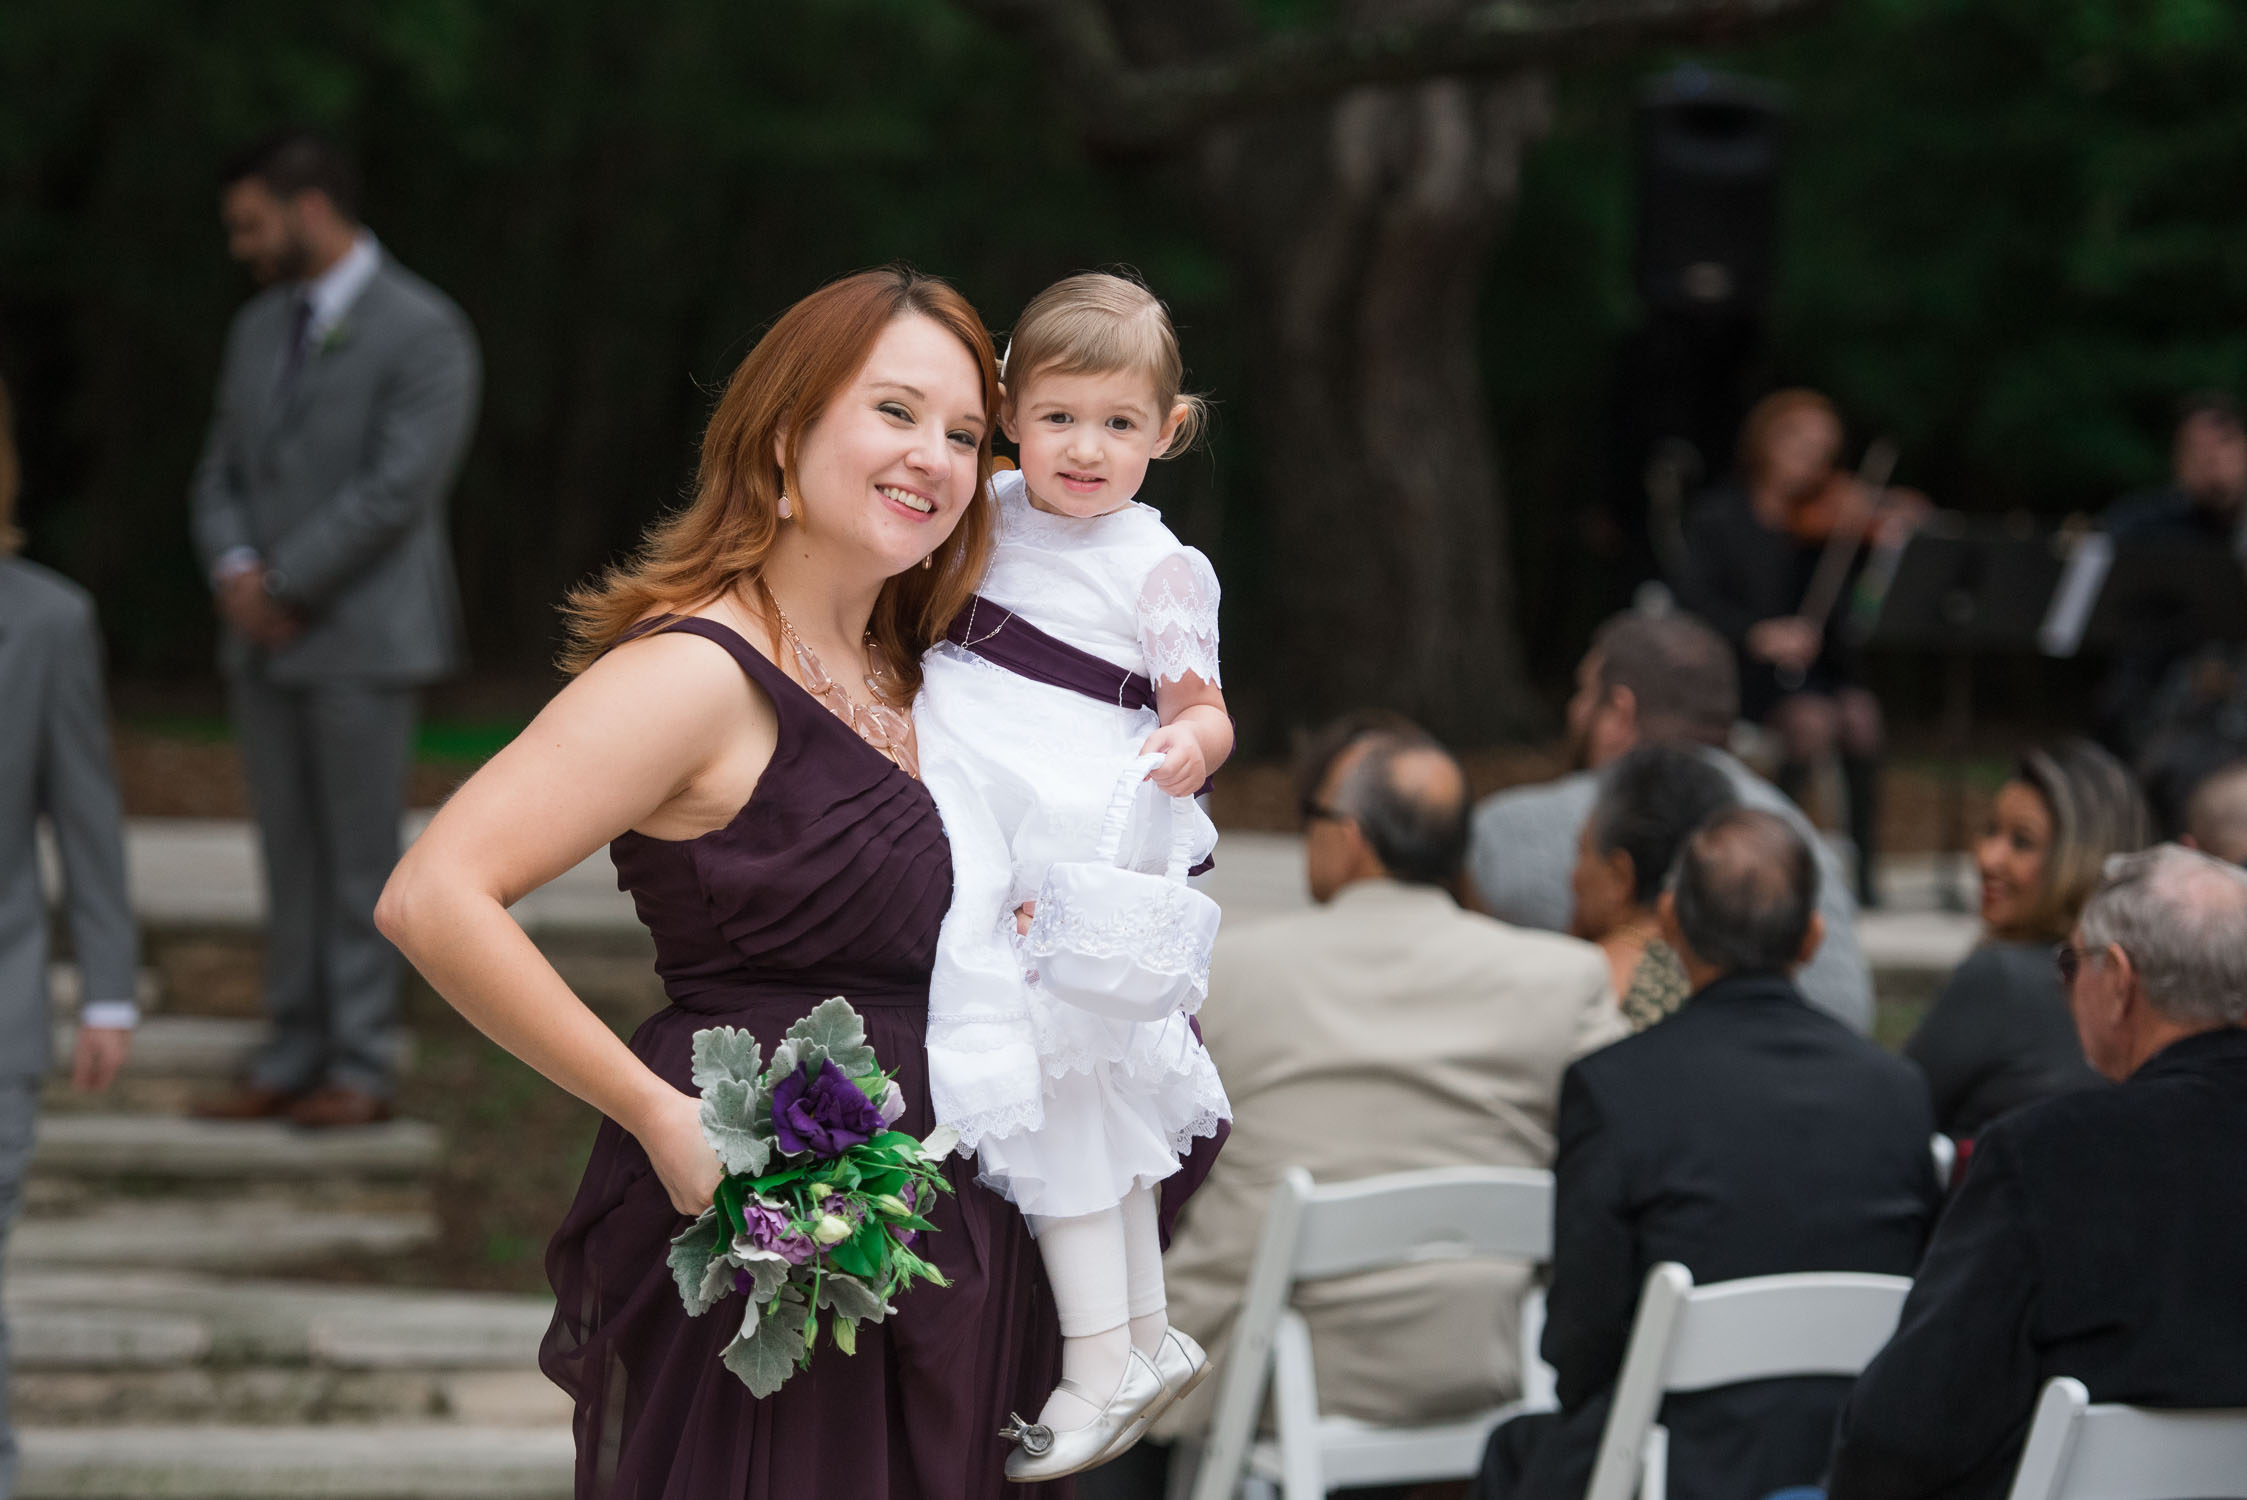 Alex and Austin Wedding Photography at Mercury Hall in Texas-93.jpg